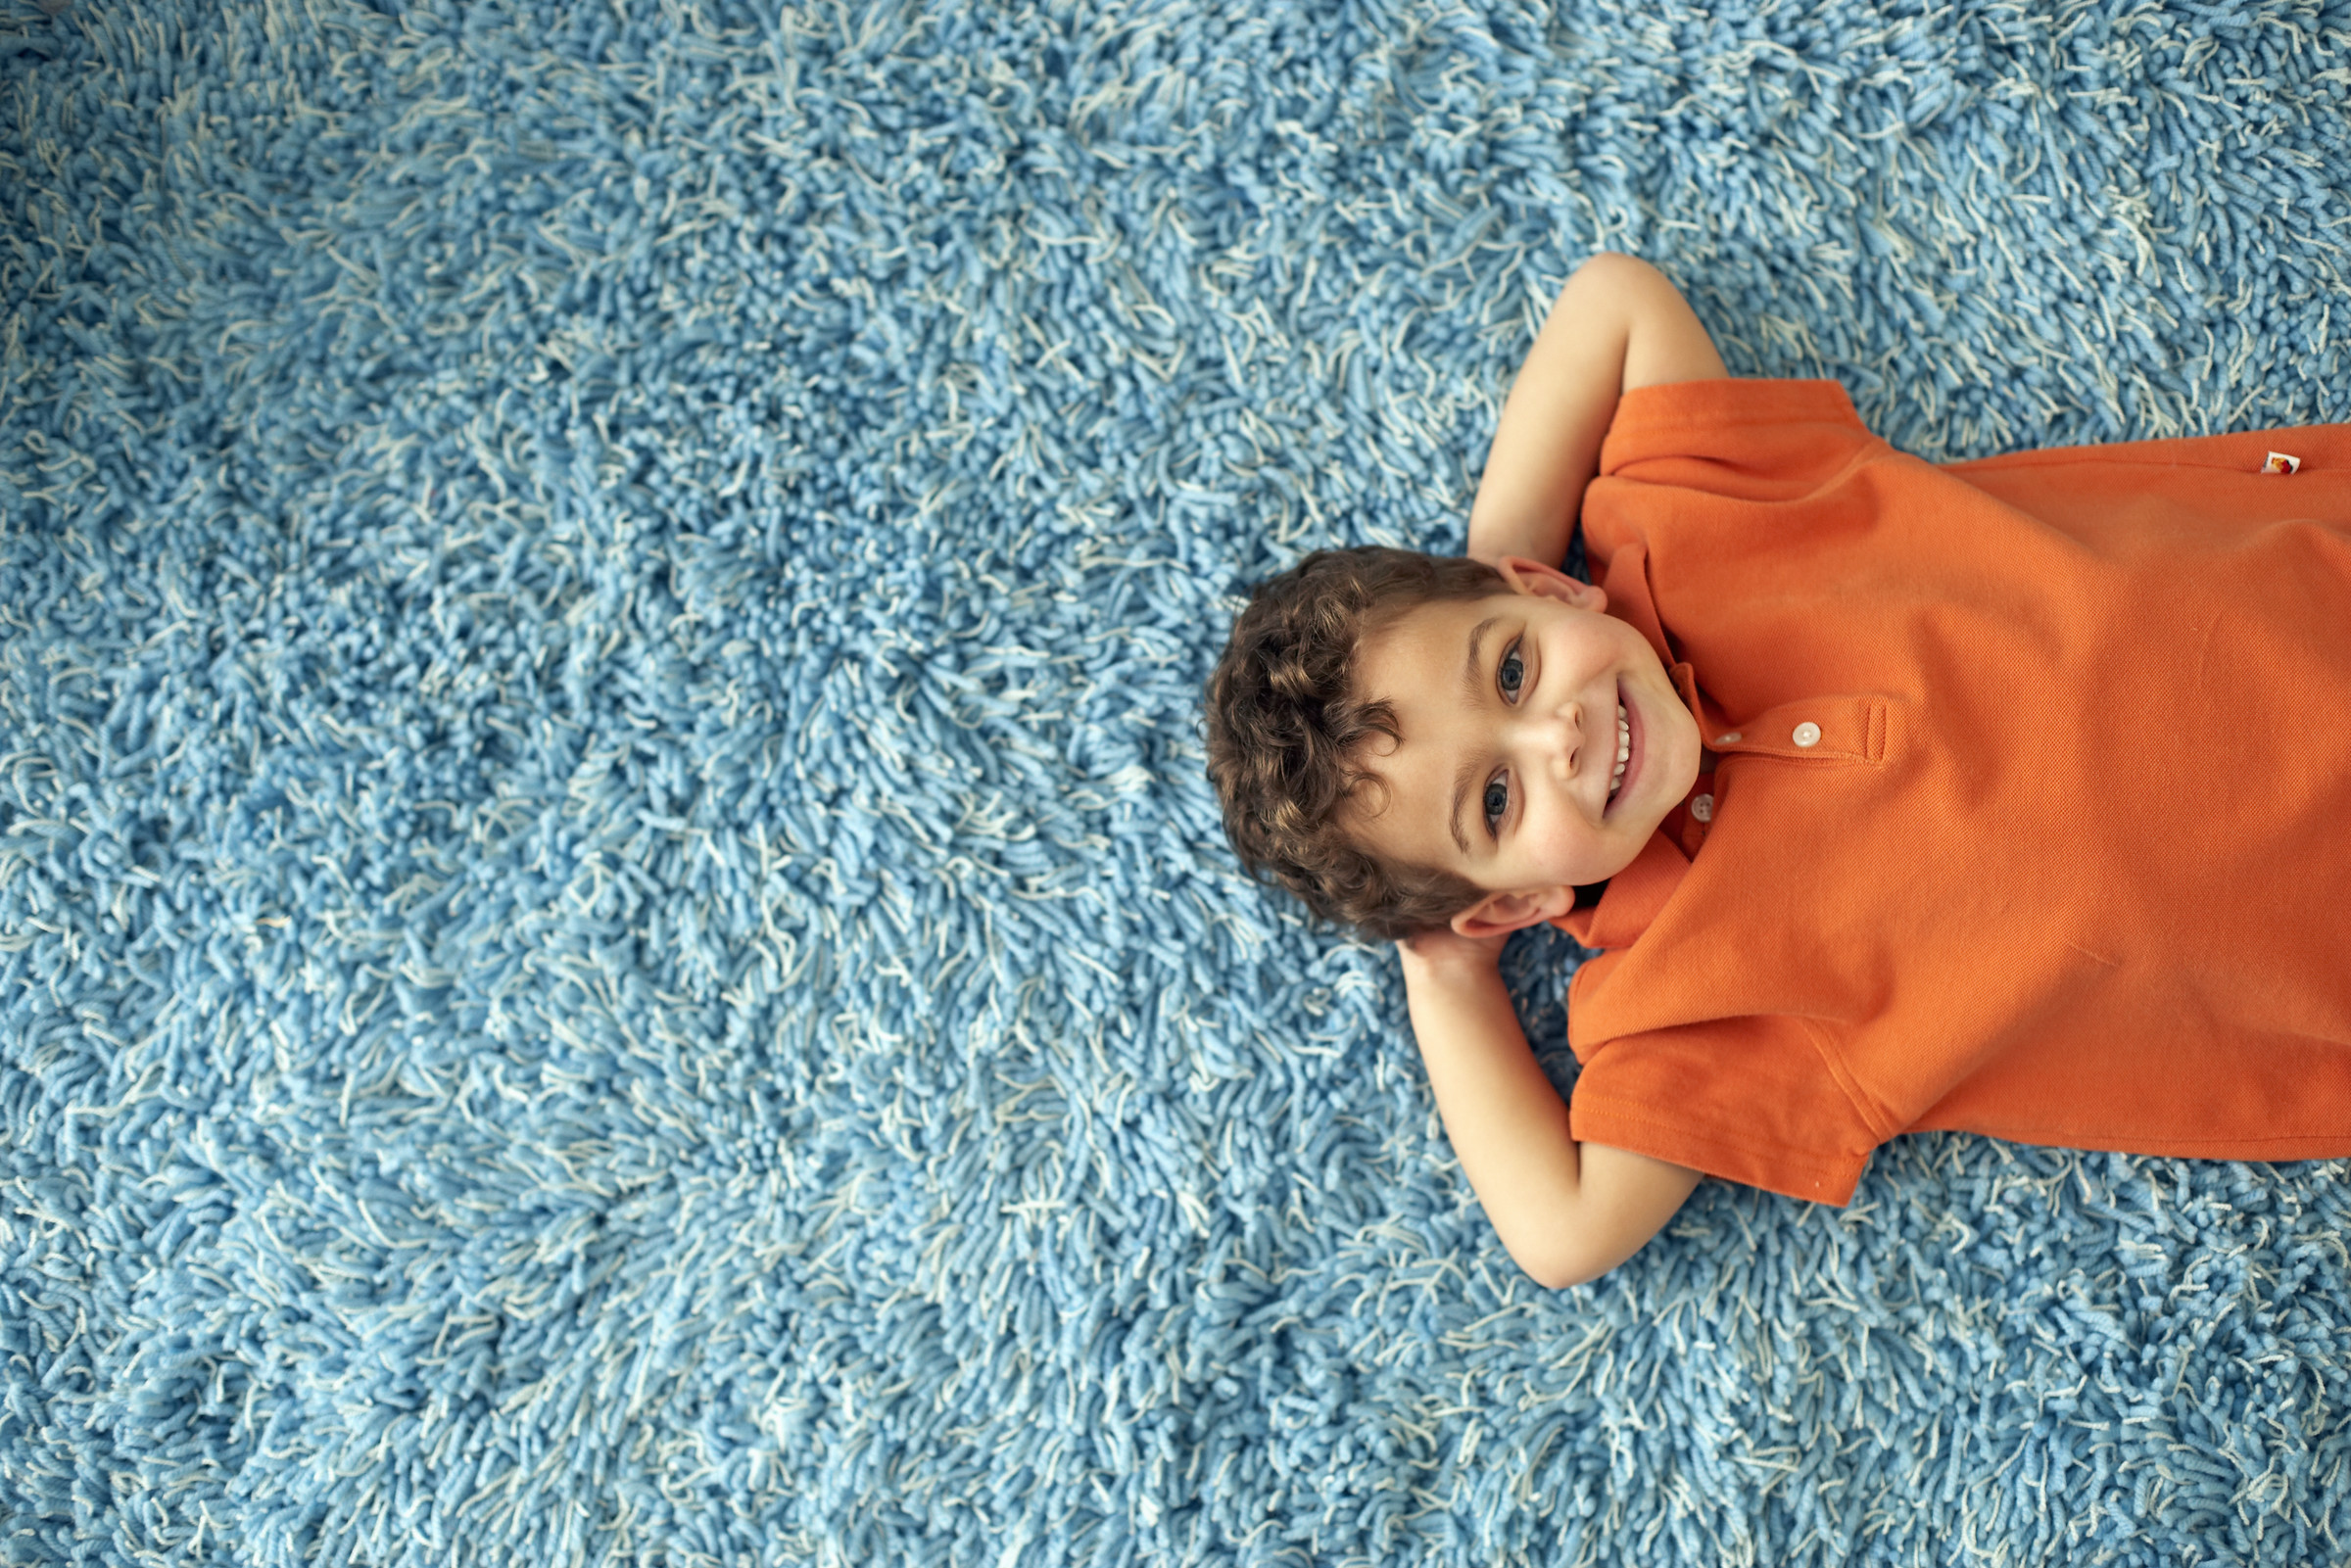 Salt Lake City Carpet Cleaning Boy